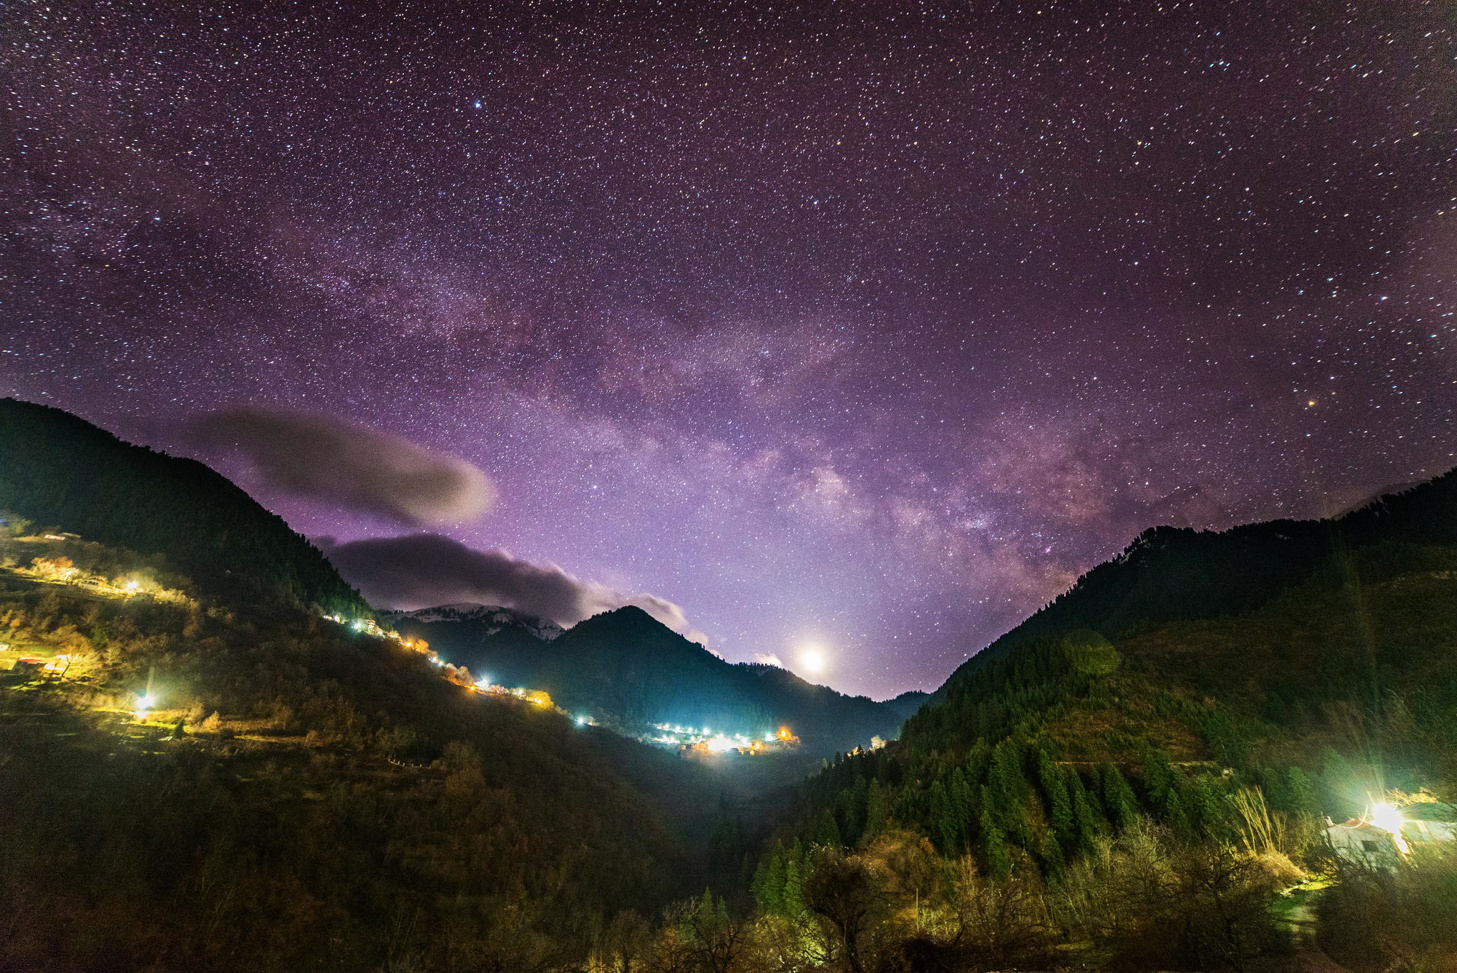 Milky Way and the Moon